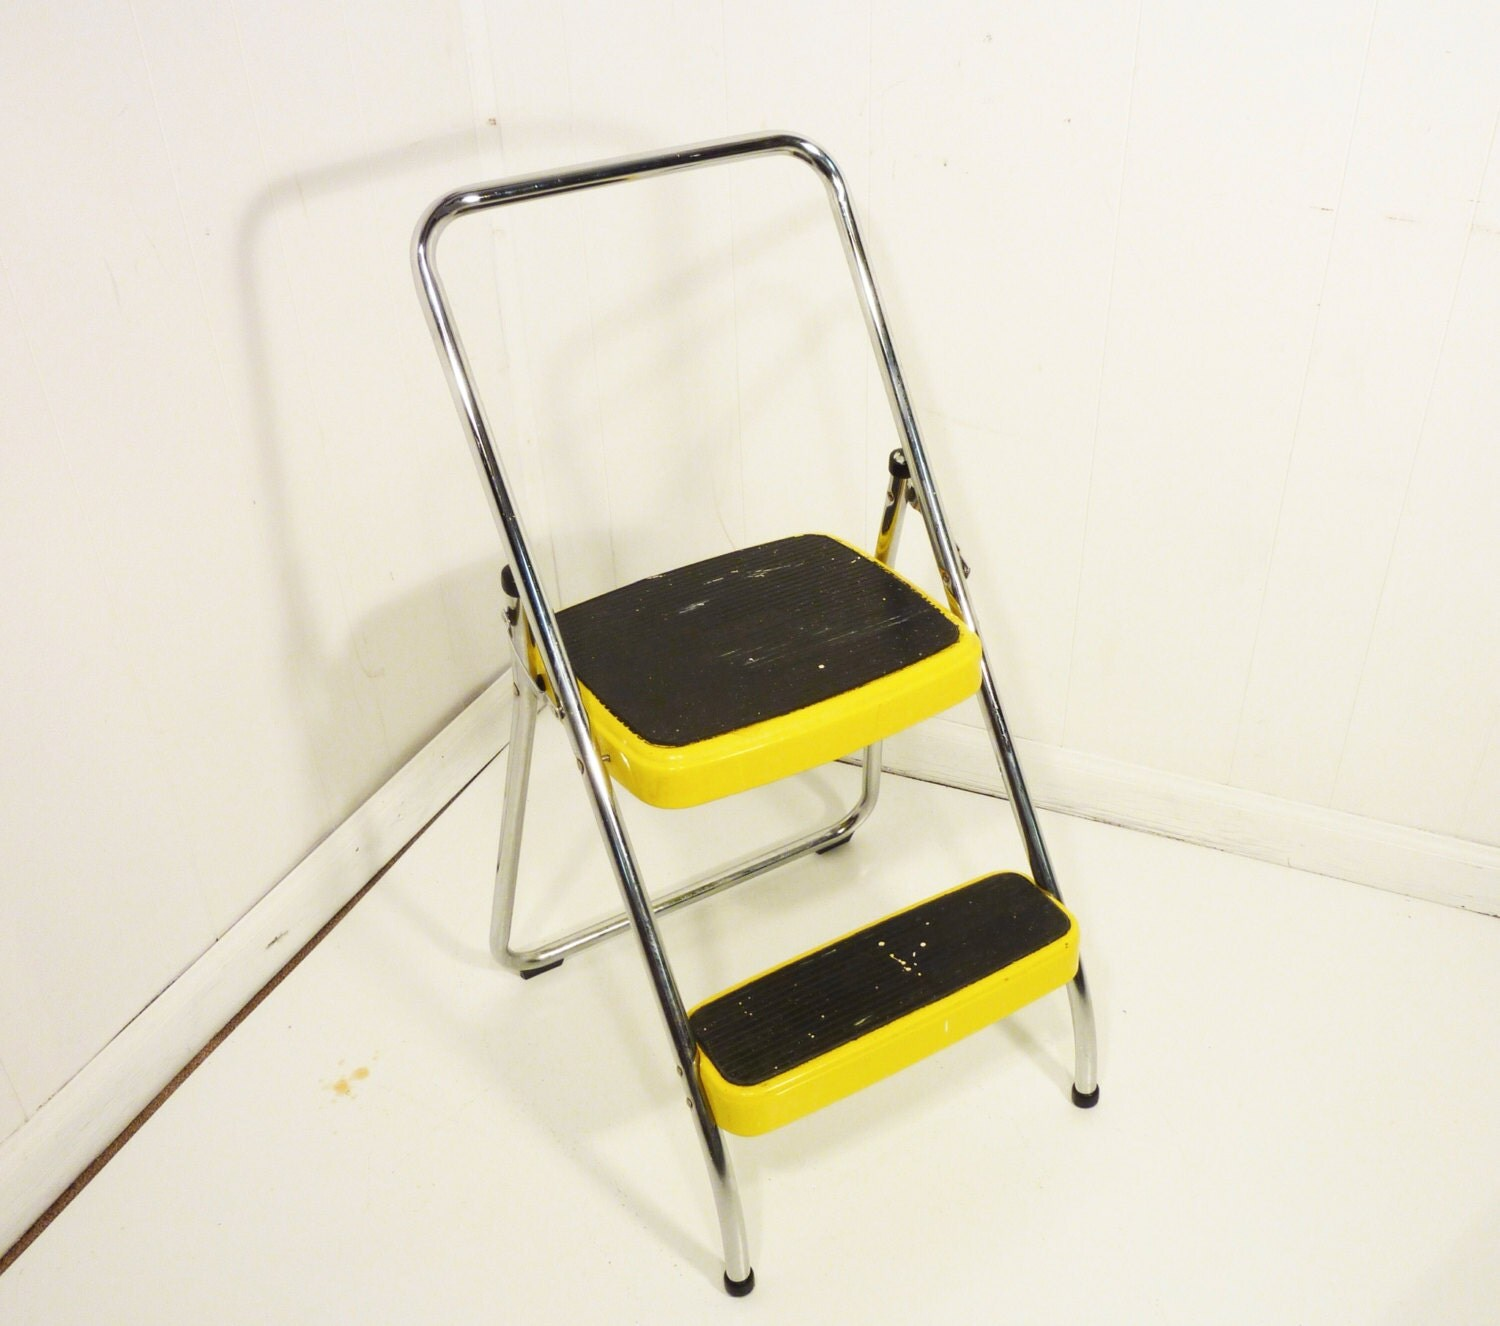 retro 50s Yellow vintage step stool kitchen stool by  : ilfullxfull491075517dq7n from www.etsy.com size 1500 x 1326 jpeg 207kB